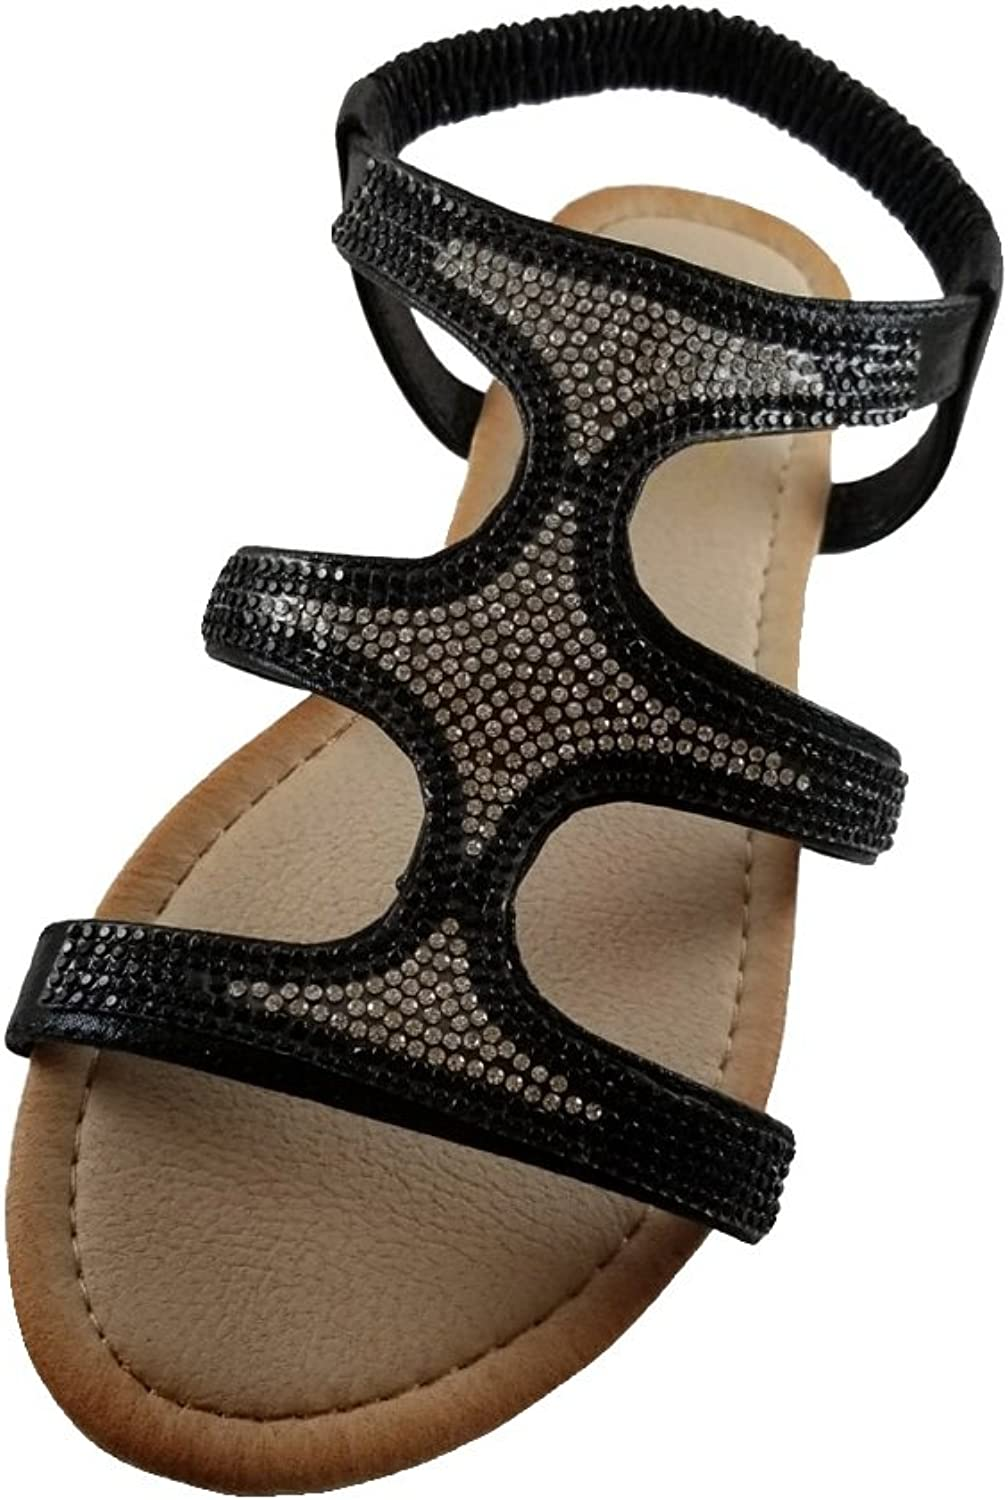 Women's Sparkling Roman Gladiator Sandals, Great for Summer Beach or Casual Everyday